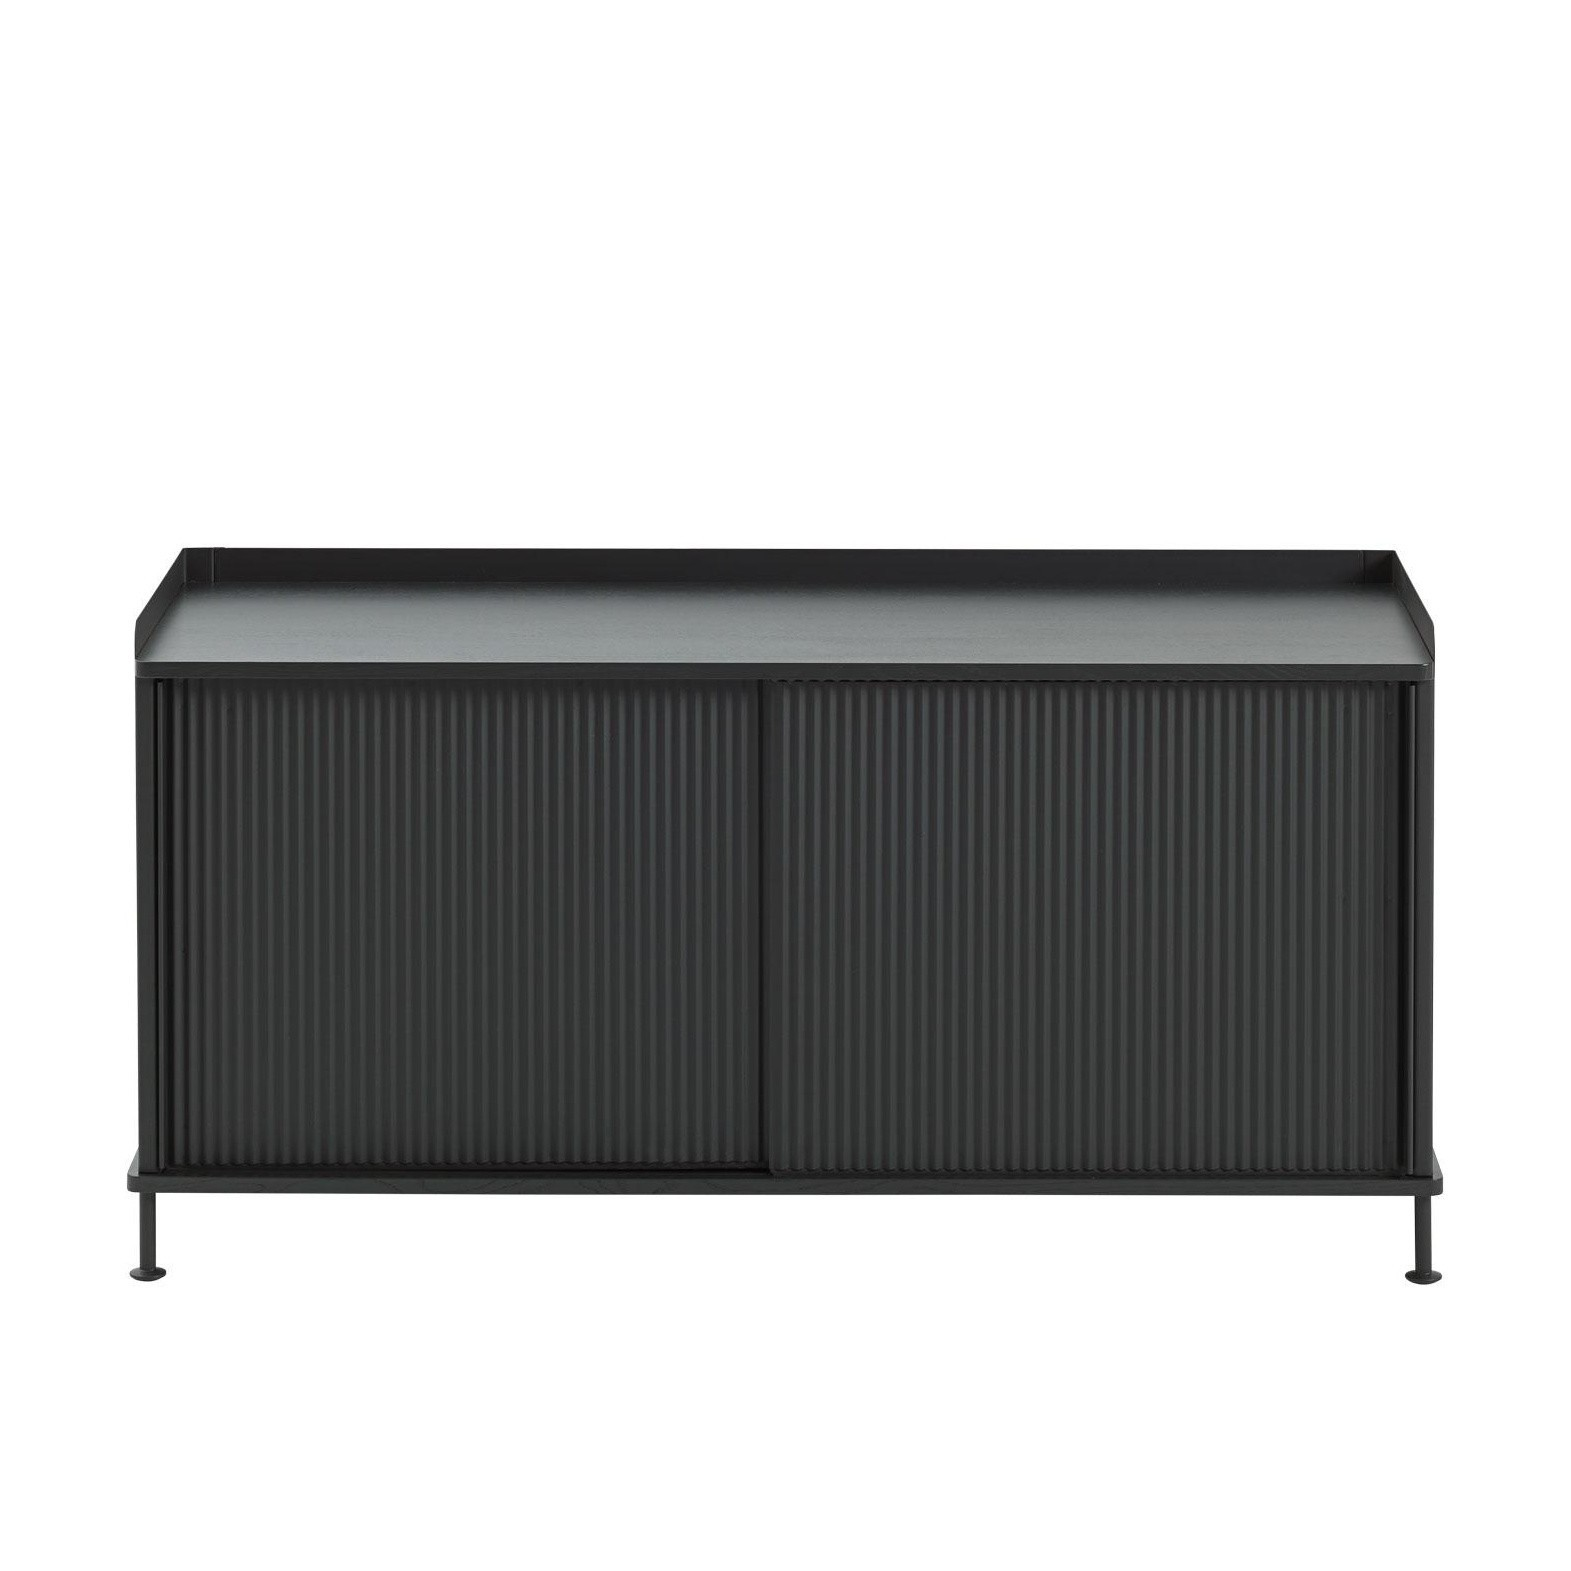 Niedrige Kommode Niedrige Sideboards Sideboards Mit Modernem Design With